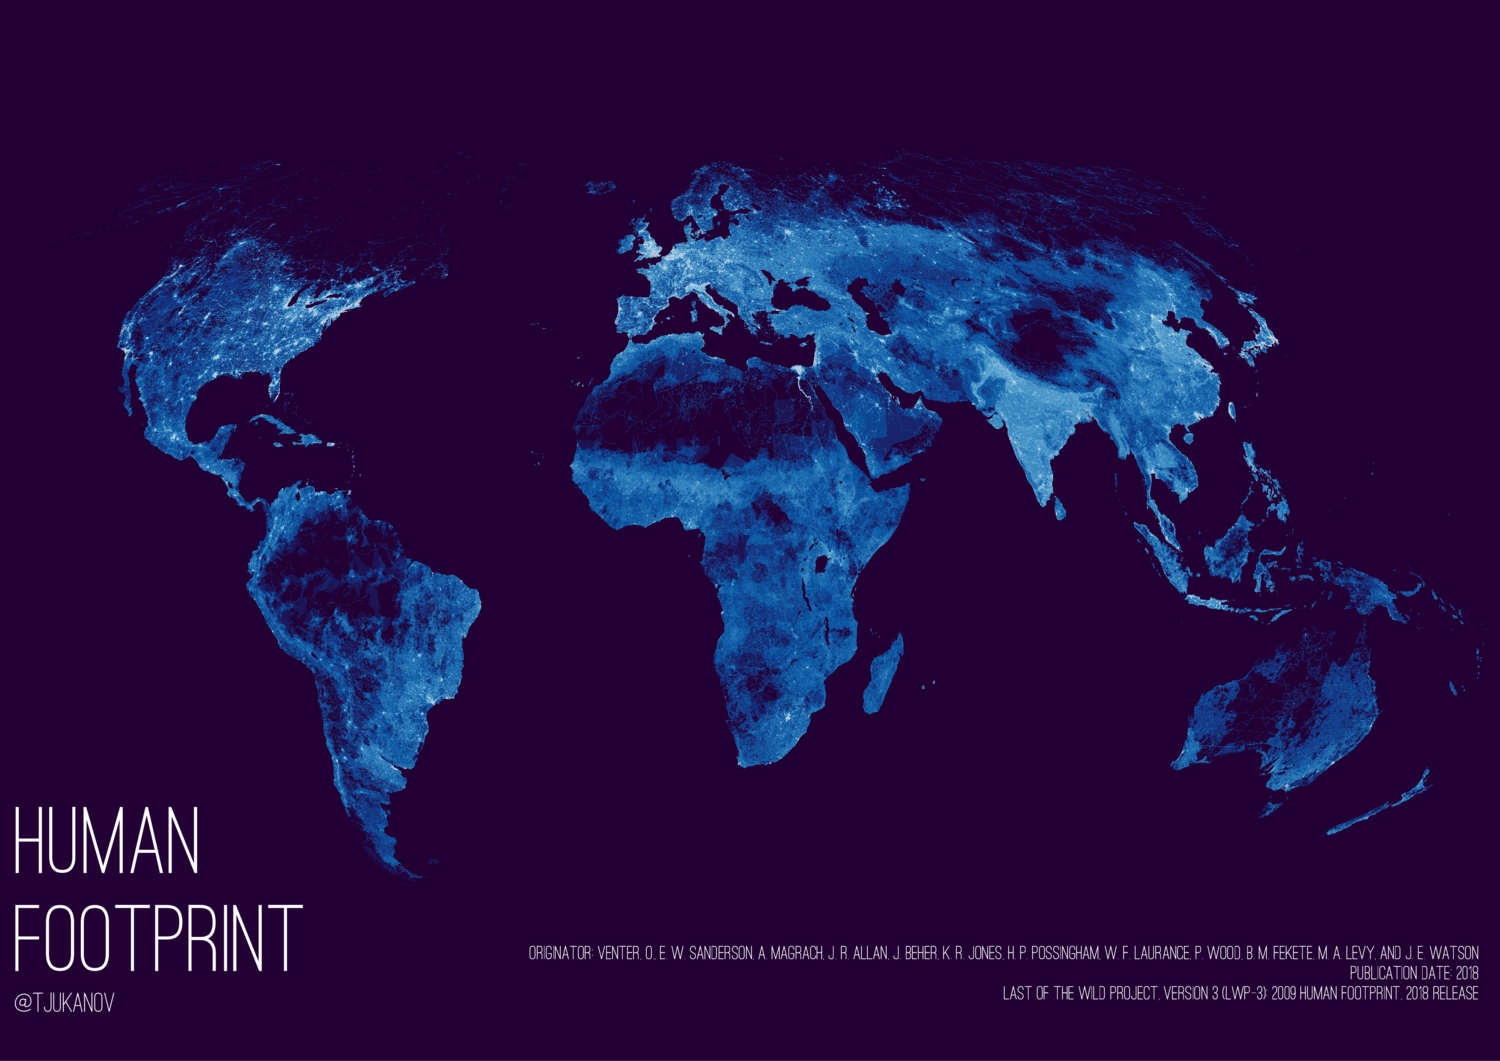 Human footprint on planet Earth